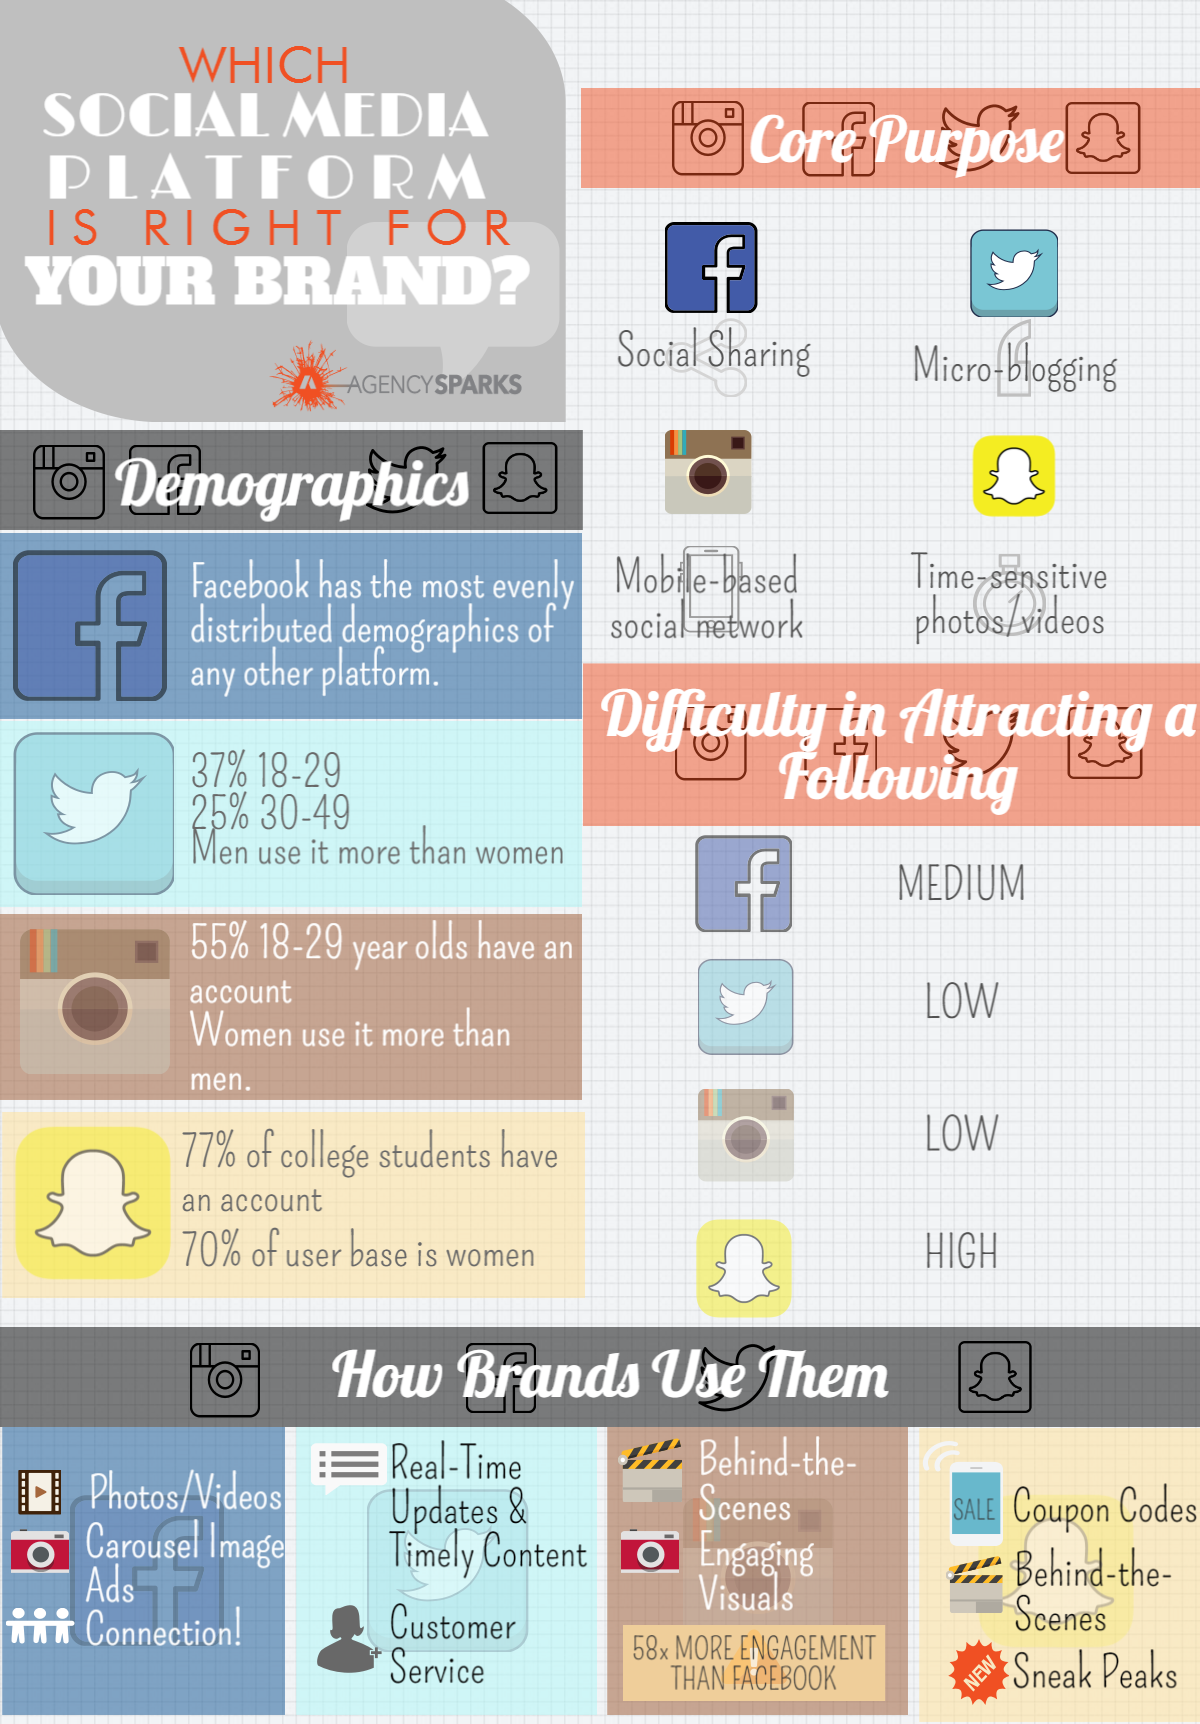 Which social media platform is right for your brand? - Infographic    Overwhelmed by the variety of social media platforms? In the infographic above, discover the social media platform(s) that make sense for your brand. Facebook is great for social sharing, a wide demographic, photos/videos, carousel image ads, and making connections. Twitter's micro-blogging, customer service, and real-time updates are great for 18-49 year-old males. Instagram is a mobile-based social network that is used by more women than men, with a majority being 18-29 years old. This platform can be used for behind-the scenes footage and has 58x more engagement than Facebook! Snapchat's time-sensitive visuals work best for female college students through use of coupon codes and sneak peak details. Which social media fits your brand best?